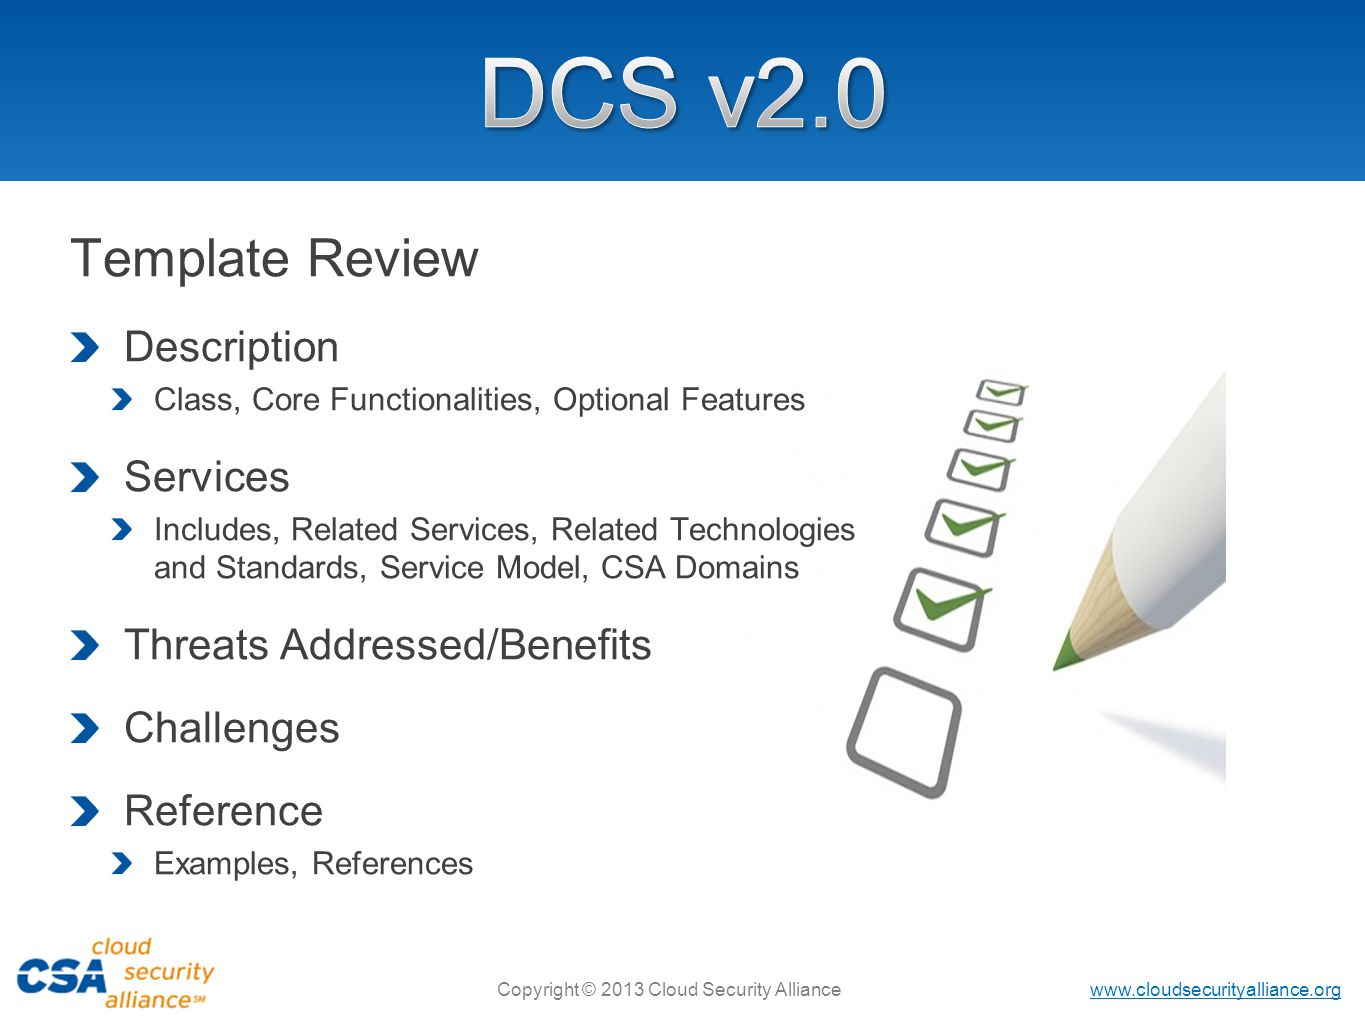 www.cloudsecurityalliance.org Copyright © 2013 Cloud Security Alliance Template Review Description Class, Core Functionalities, Optional Features Services Includes, Related Services, Related Technologies and Standards, Service Model, CSA Domains Threats Addressed/Benefits Challenges Reference Examples, References